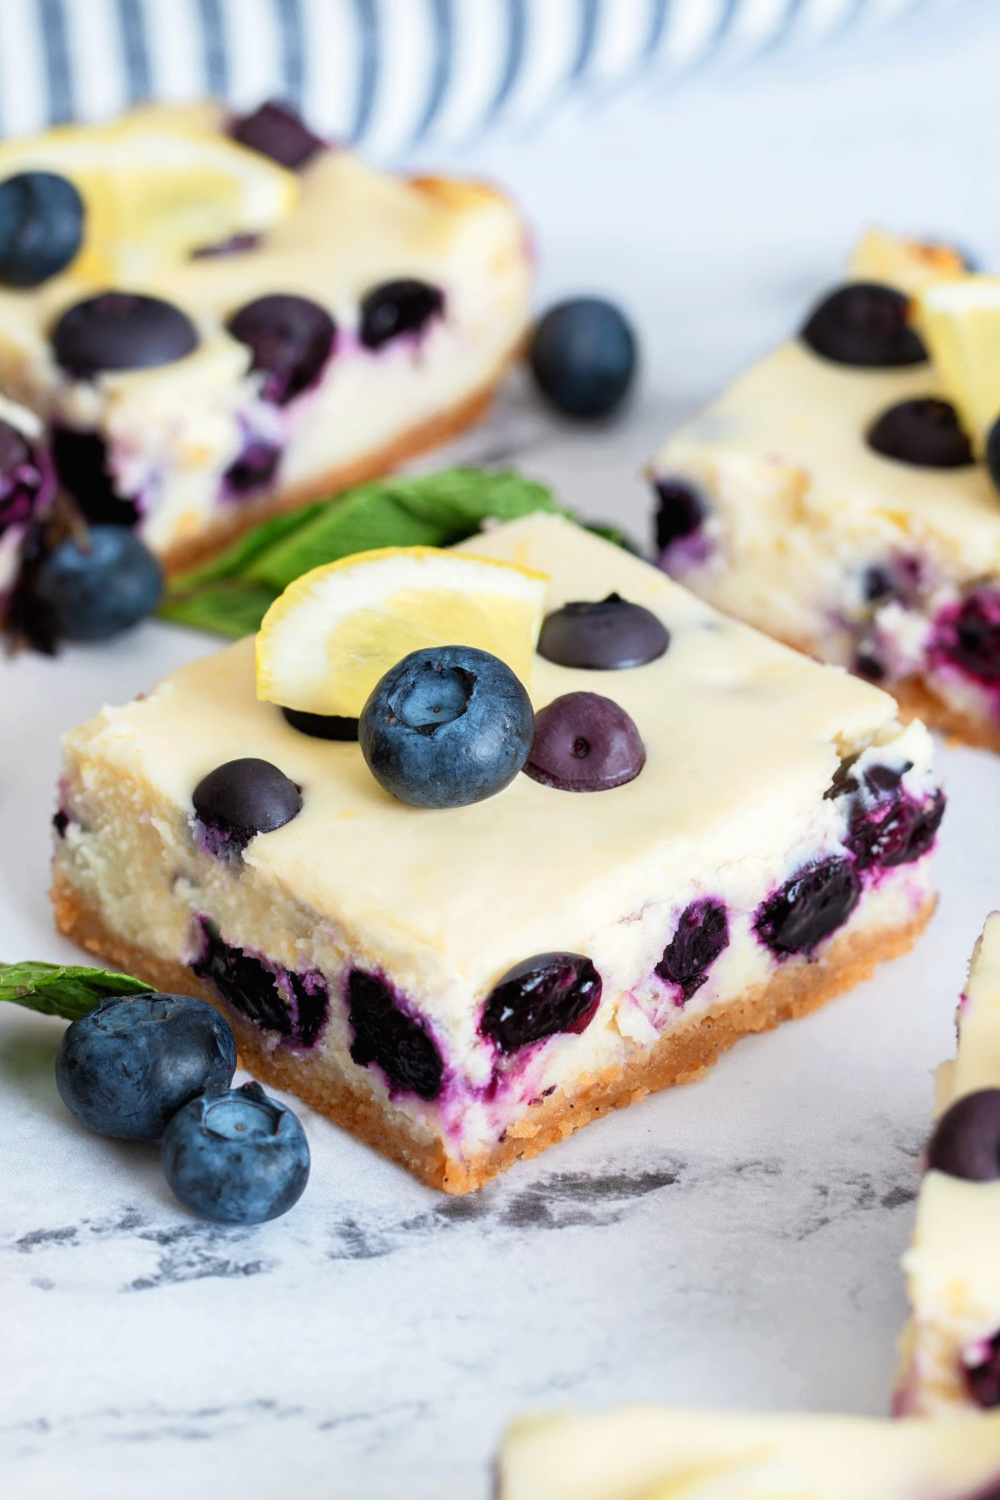 Blueberry Lemon Cheesecake Bars with blueberries and lemon slices